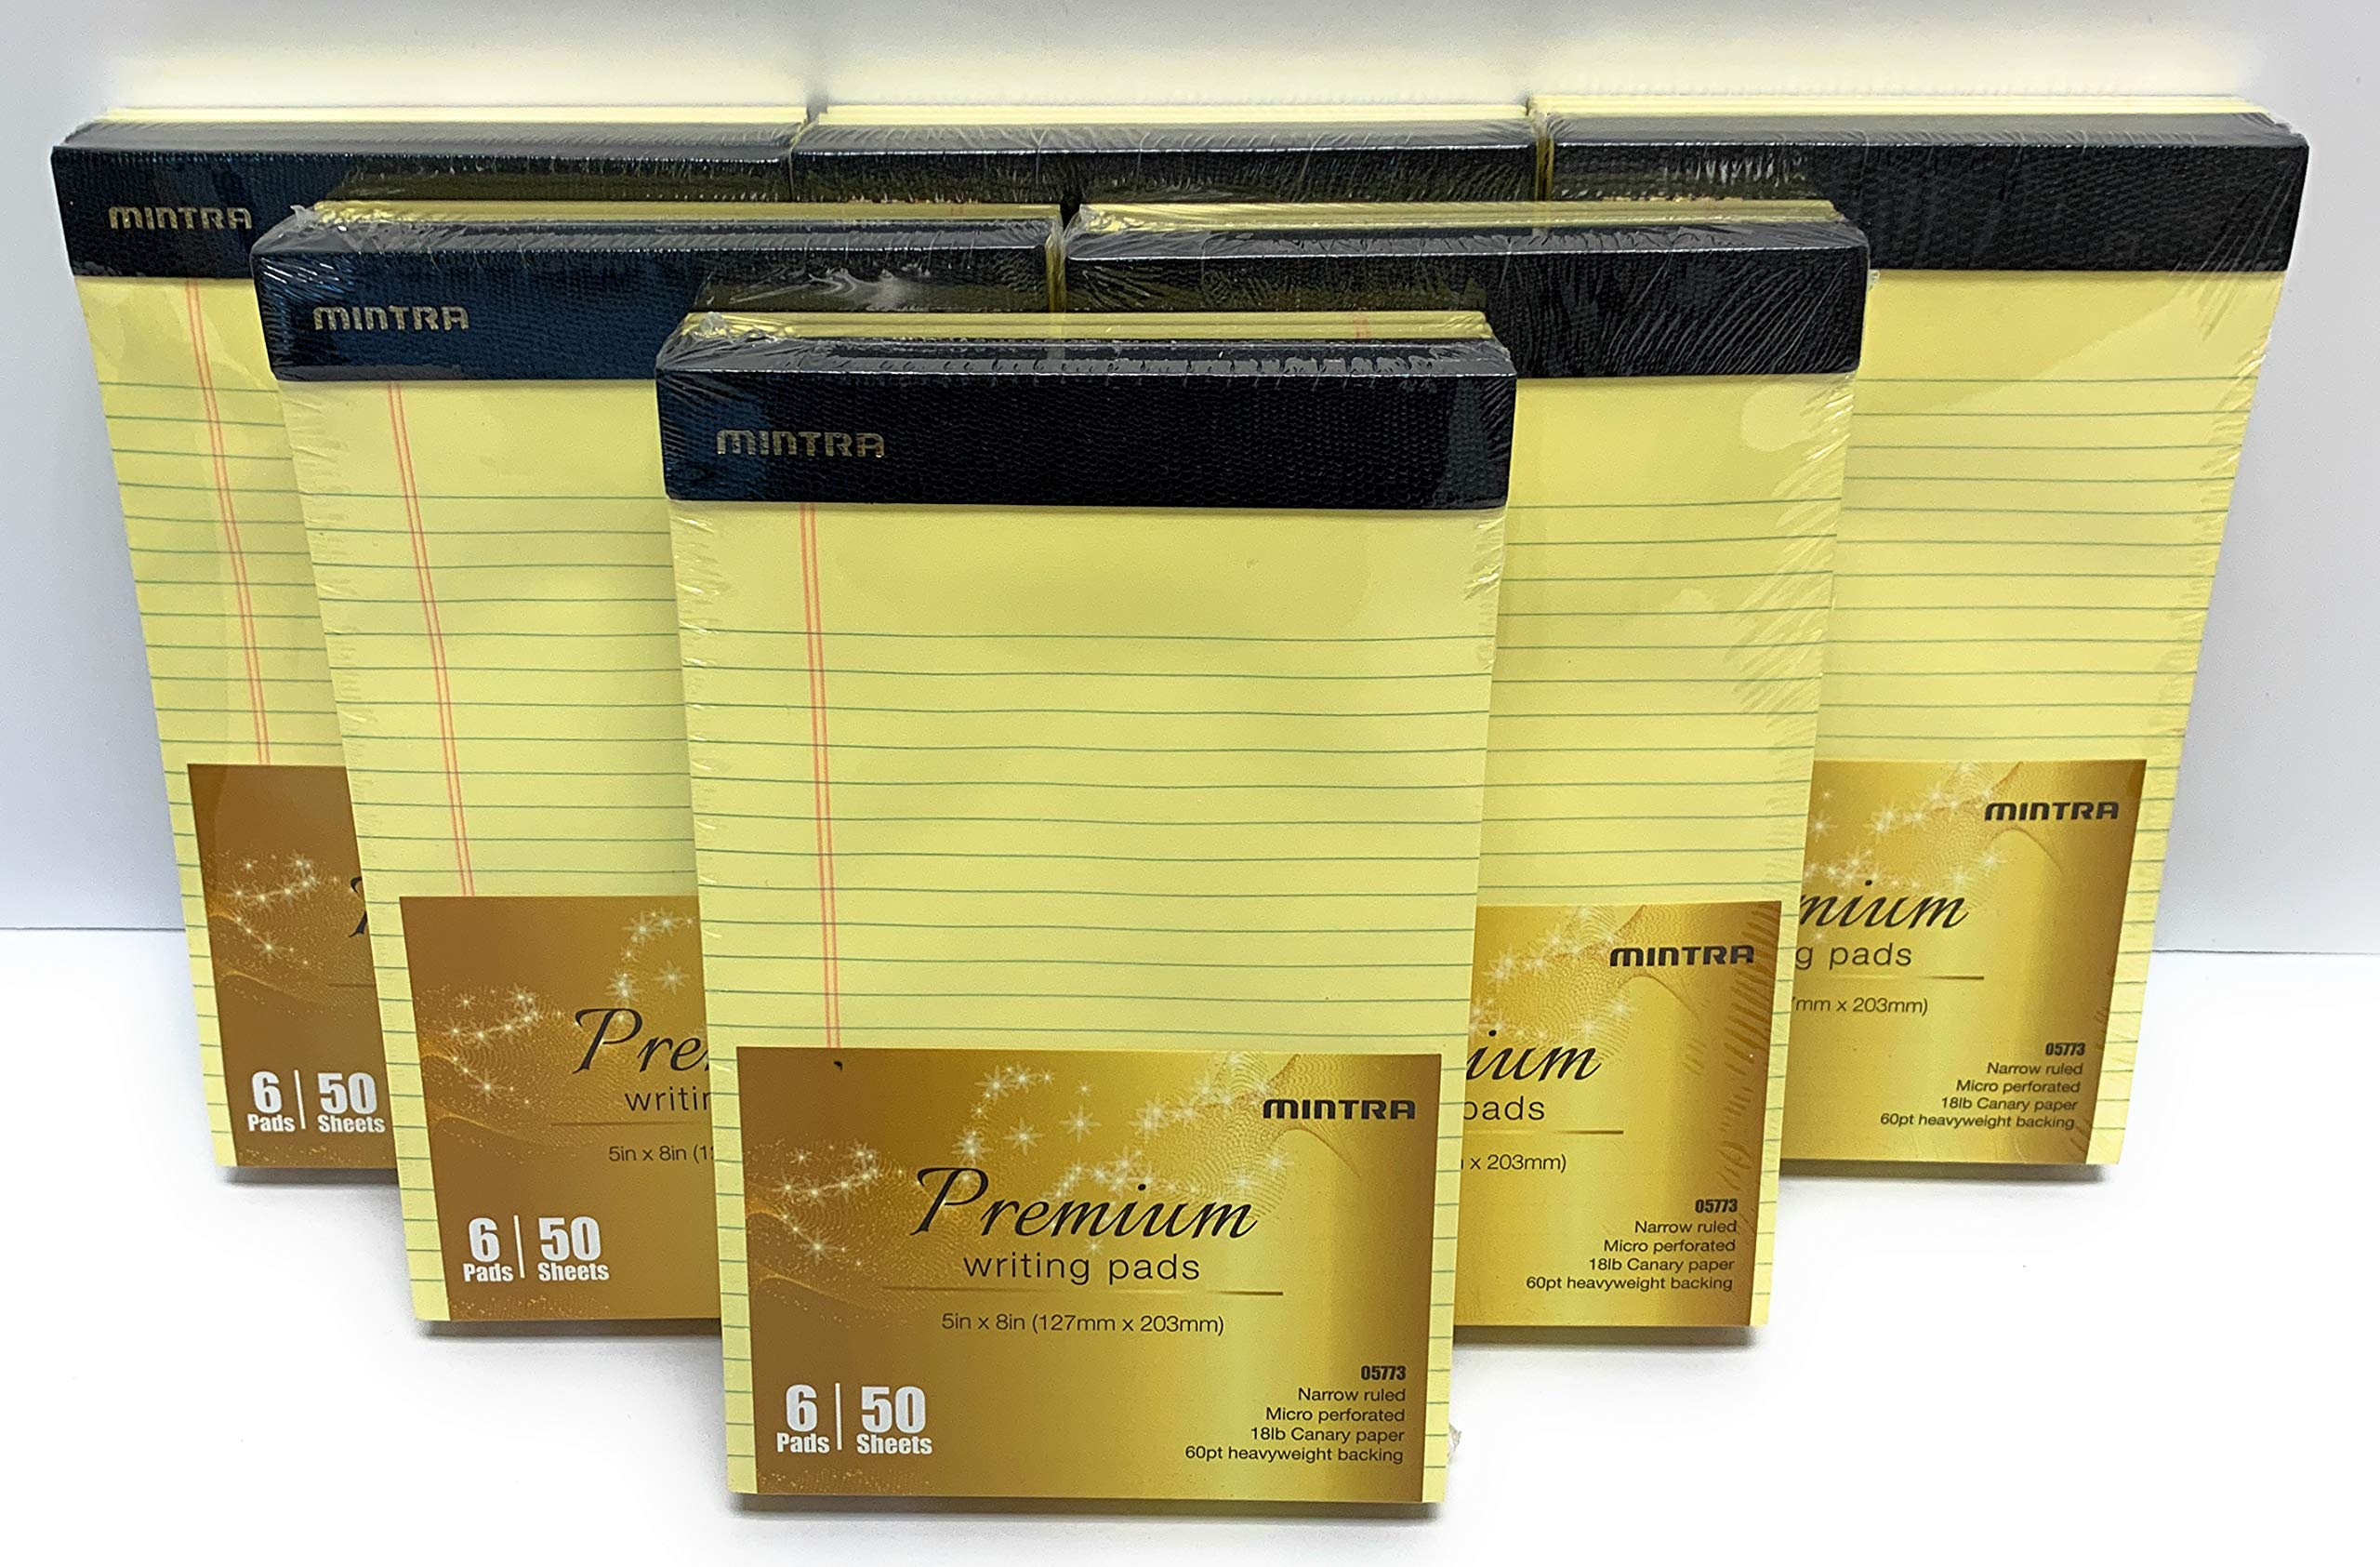 Mintra Office Legal Pads - 50 Sheets per Notepad - Micro perforated Writing Pad/Notebook Paper for School, College, Office, Work (xPremium, 5in x 8in, Narrow (Canary), 36pk (6-6pks))